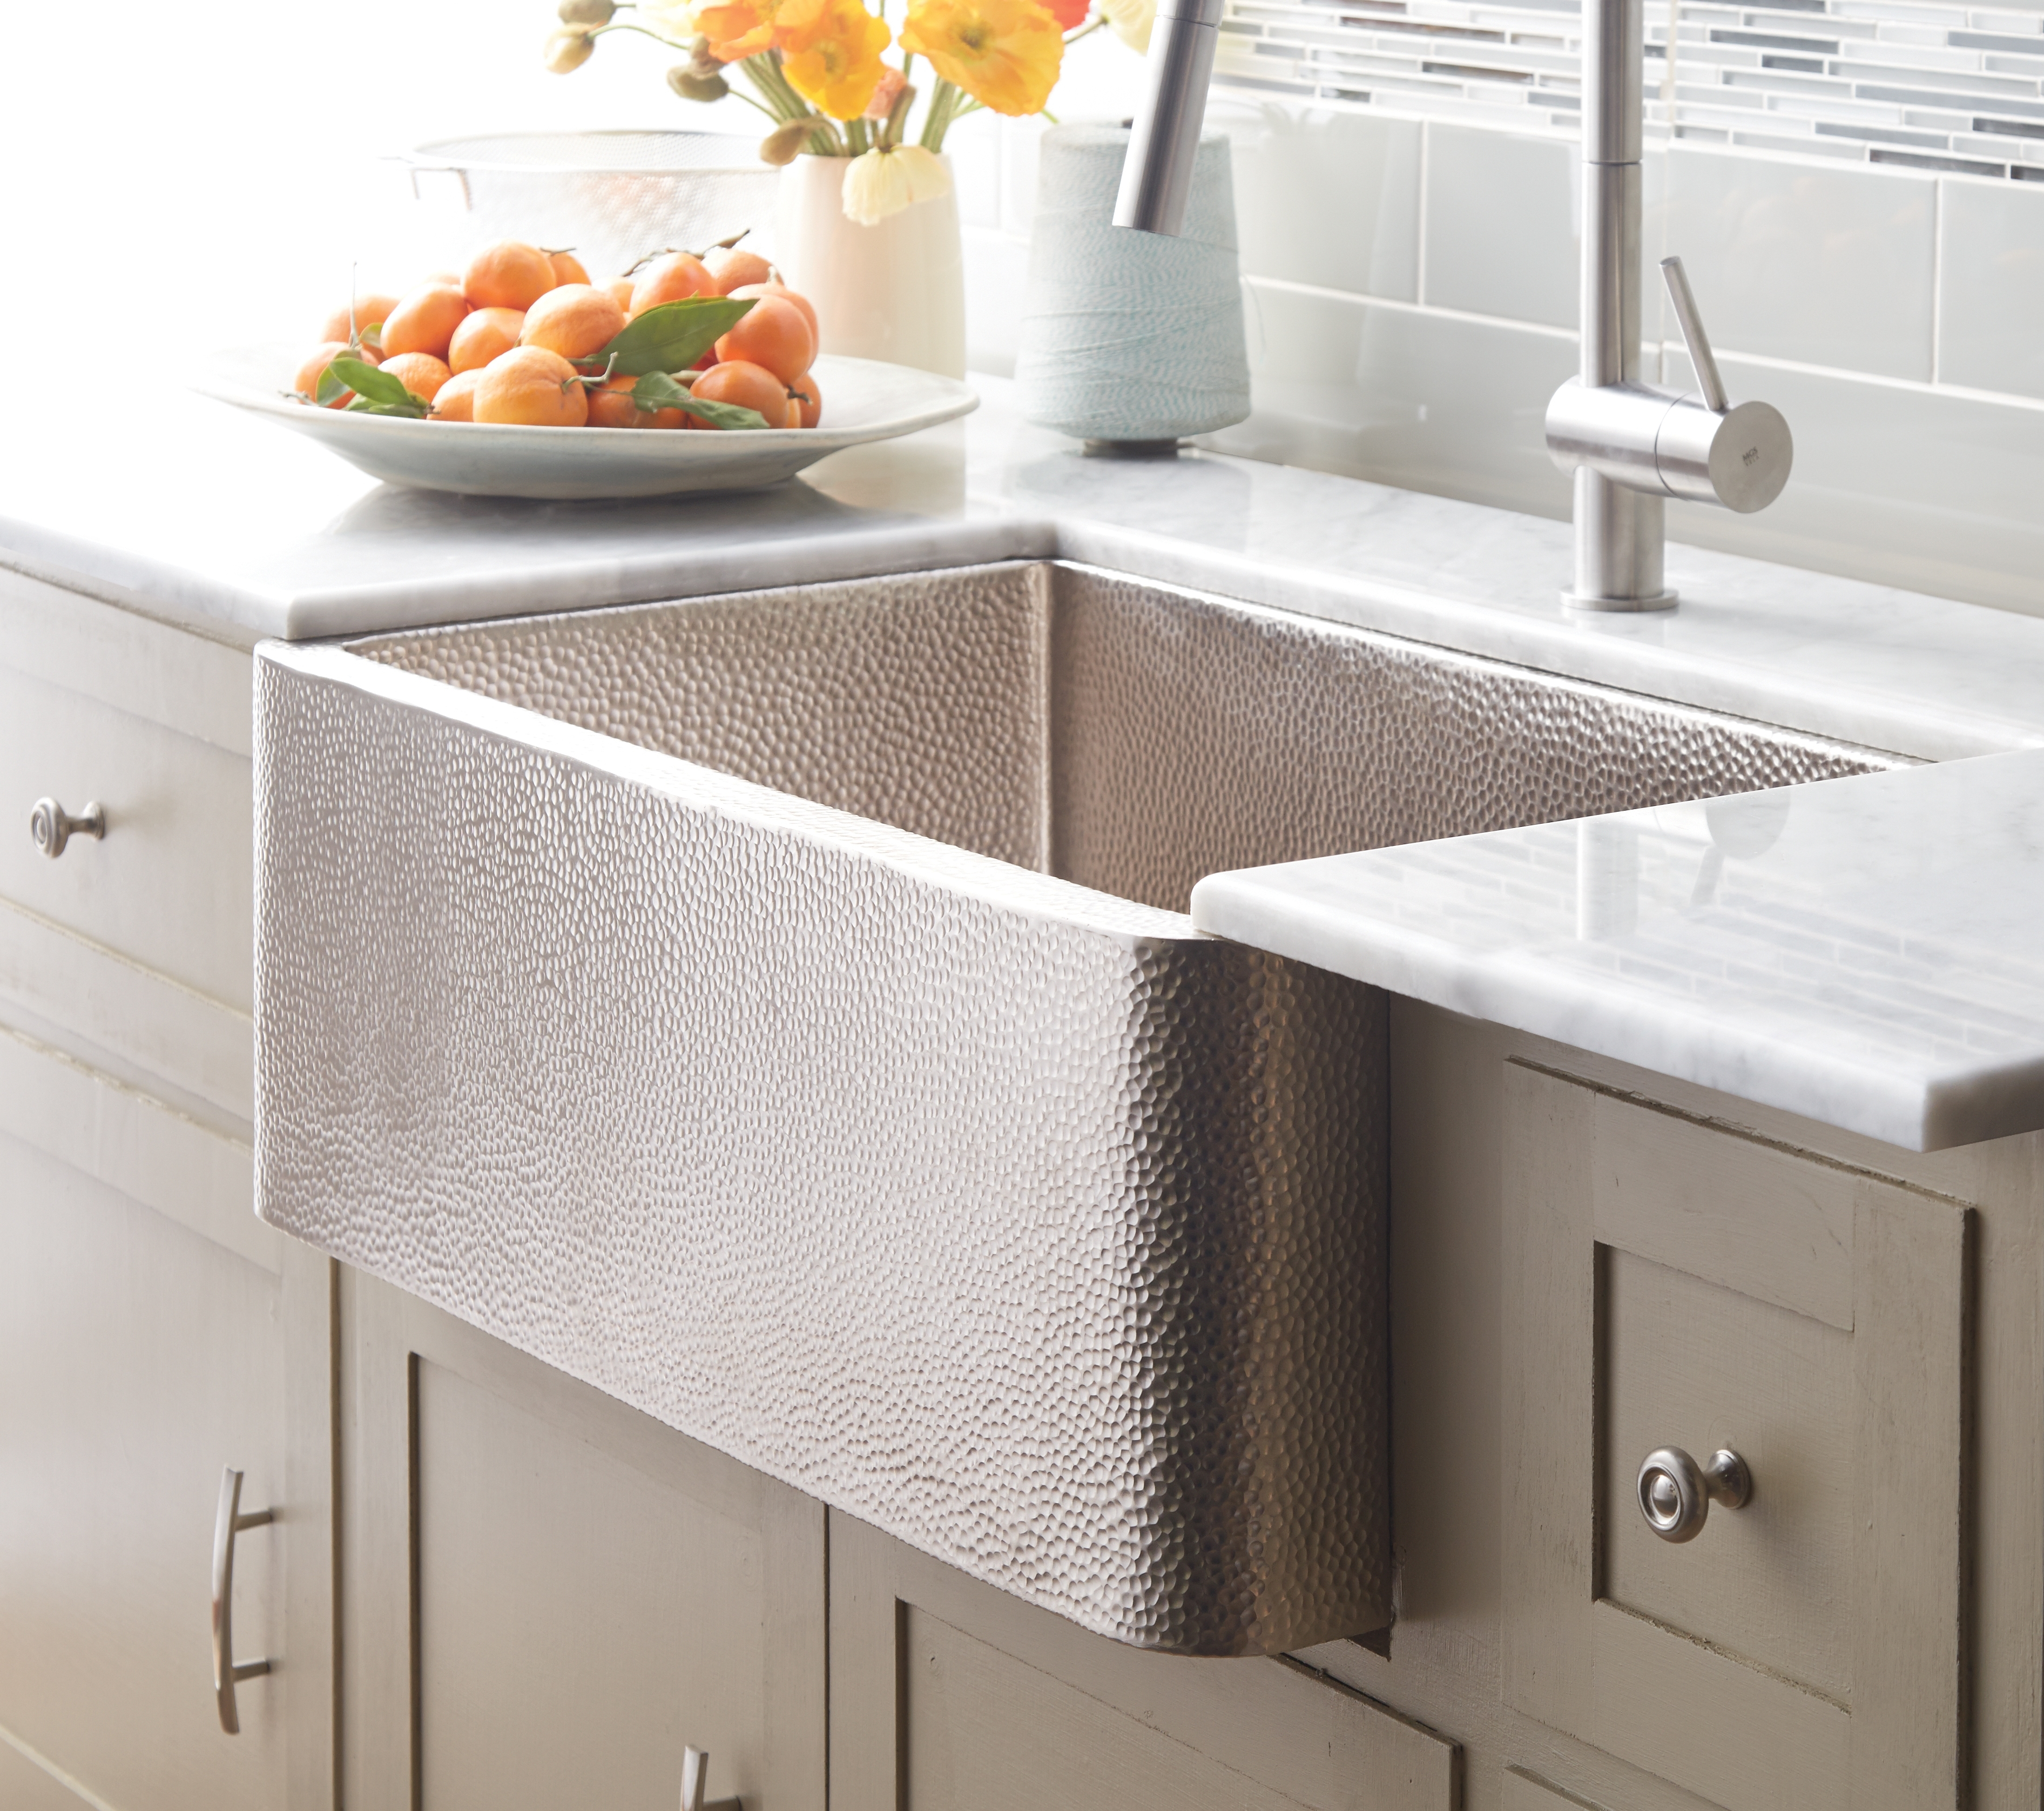 simply best kitchen faucet for farm sink